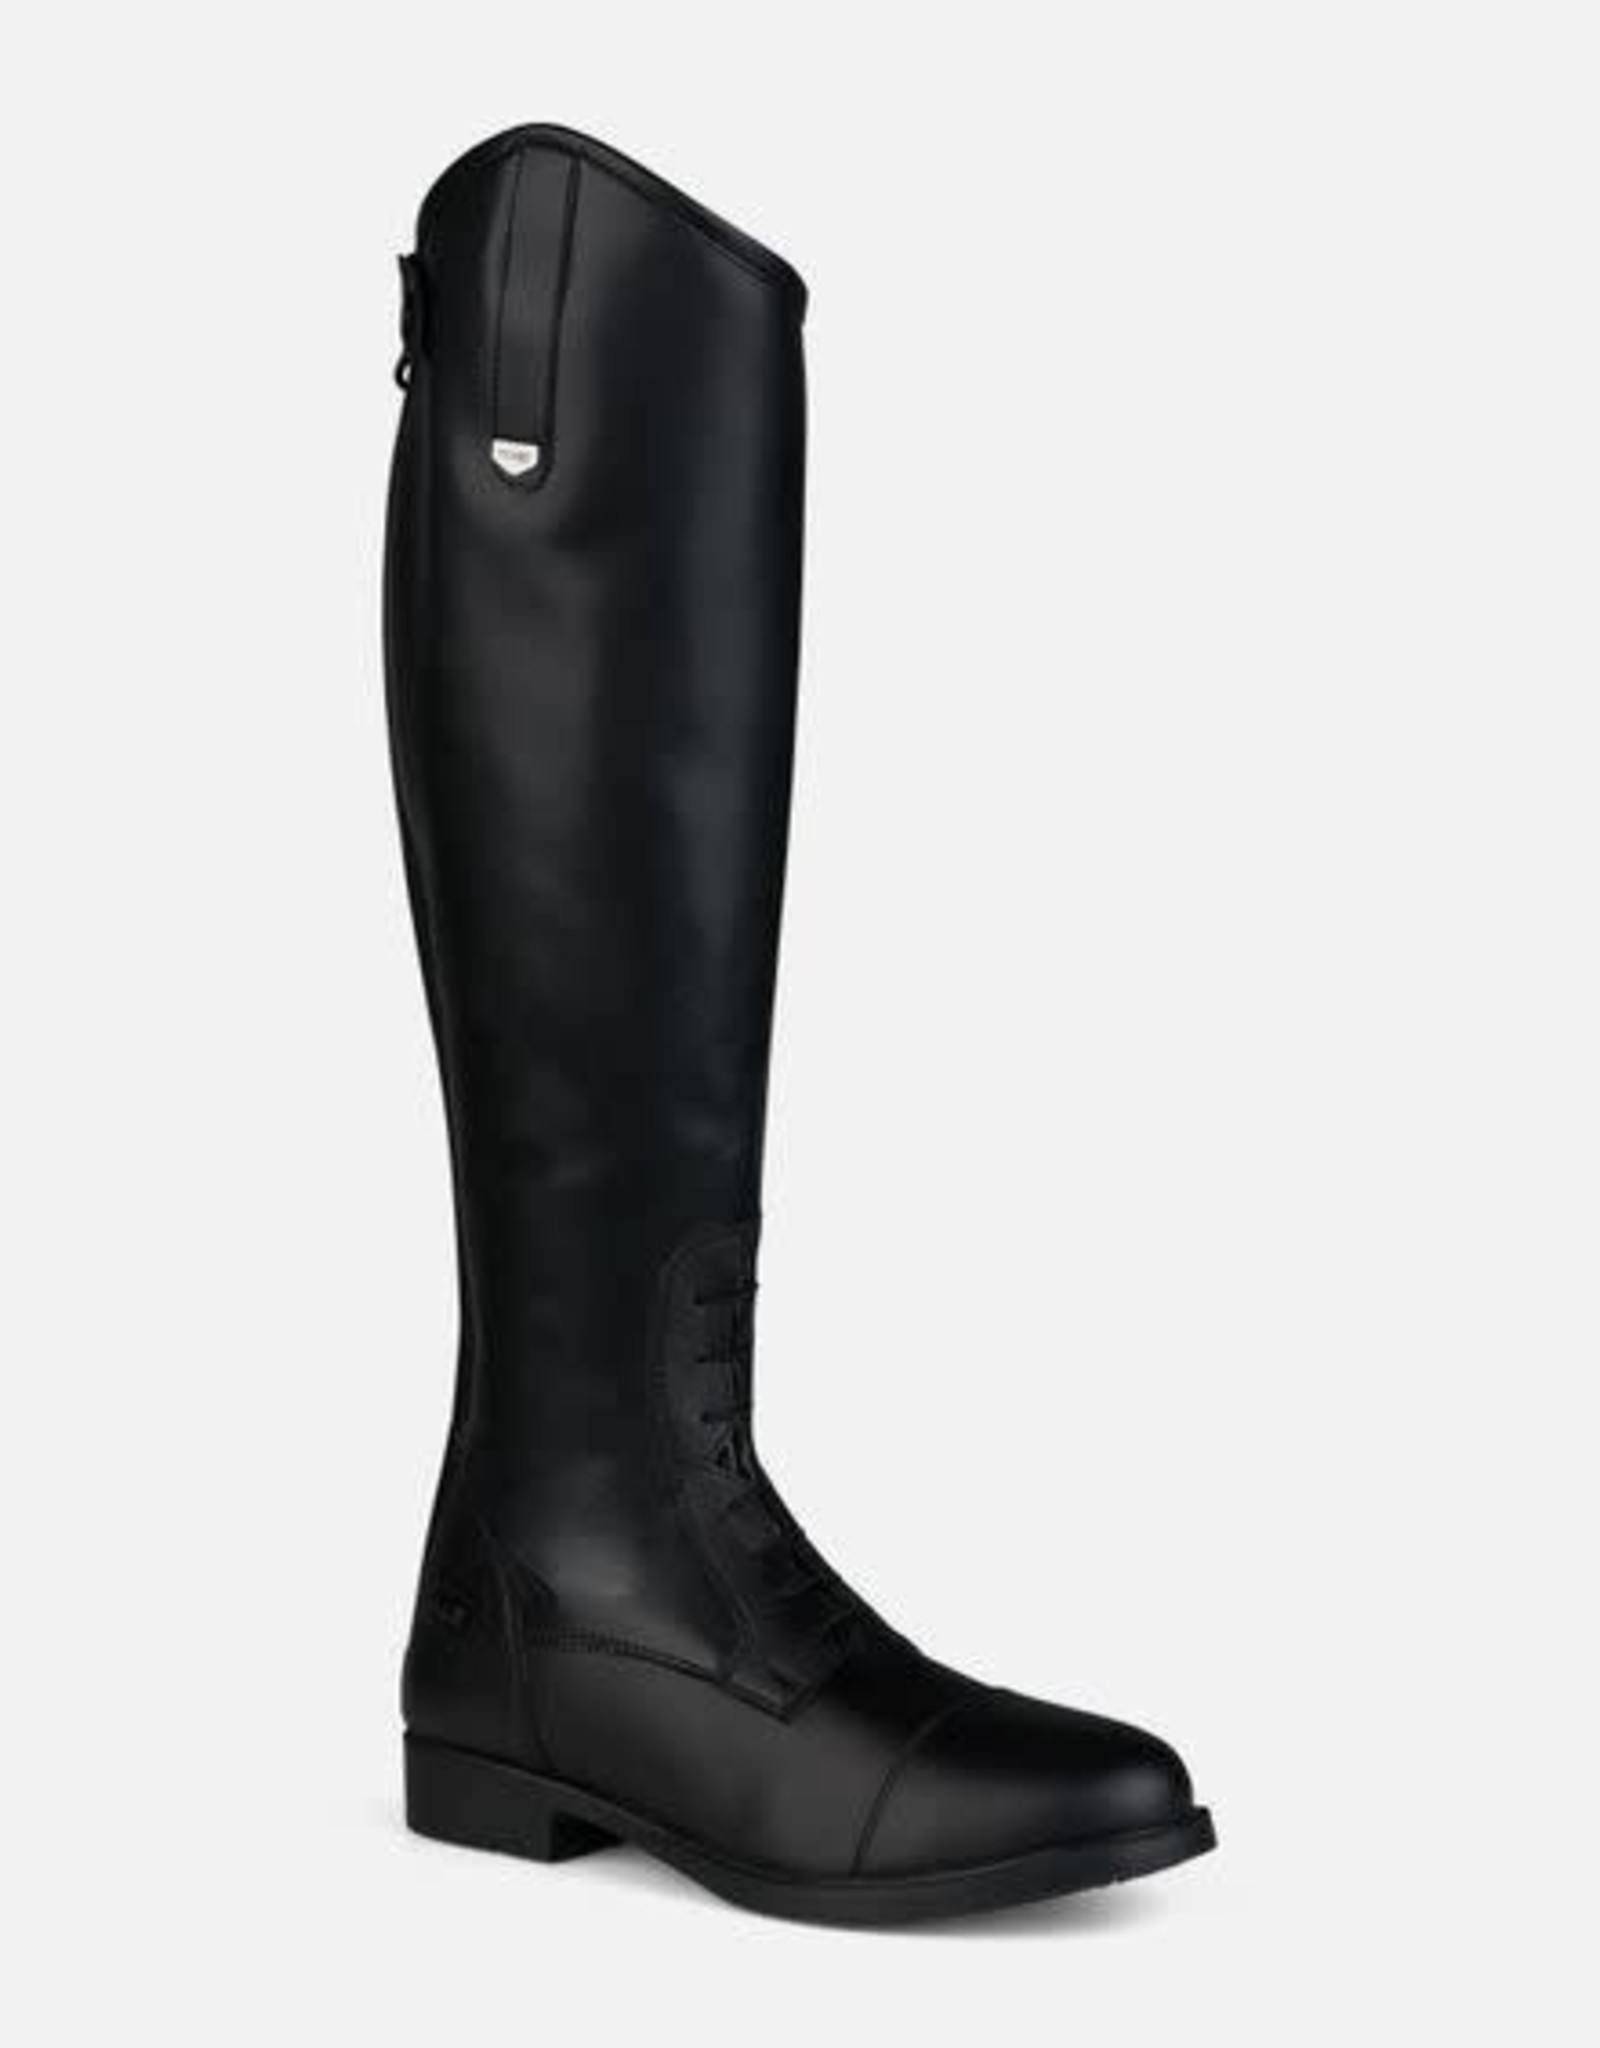 HORZE LIMITED EDITION WOMEN'S ROVER FIELD BOOT